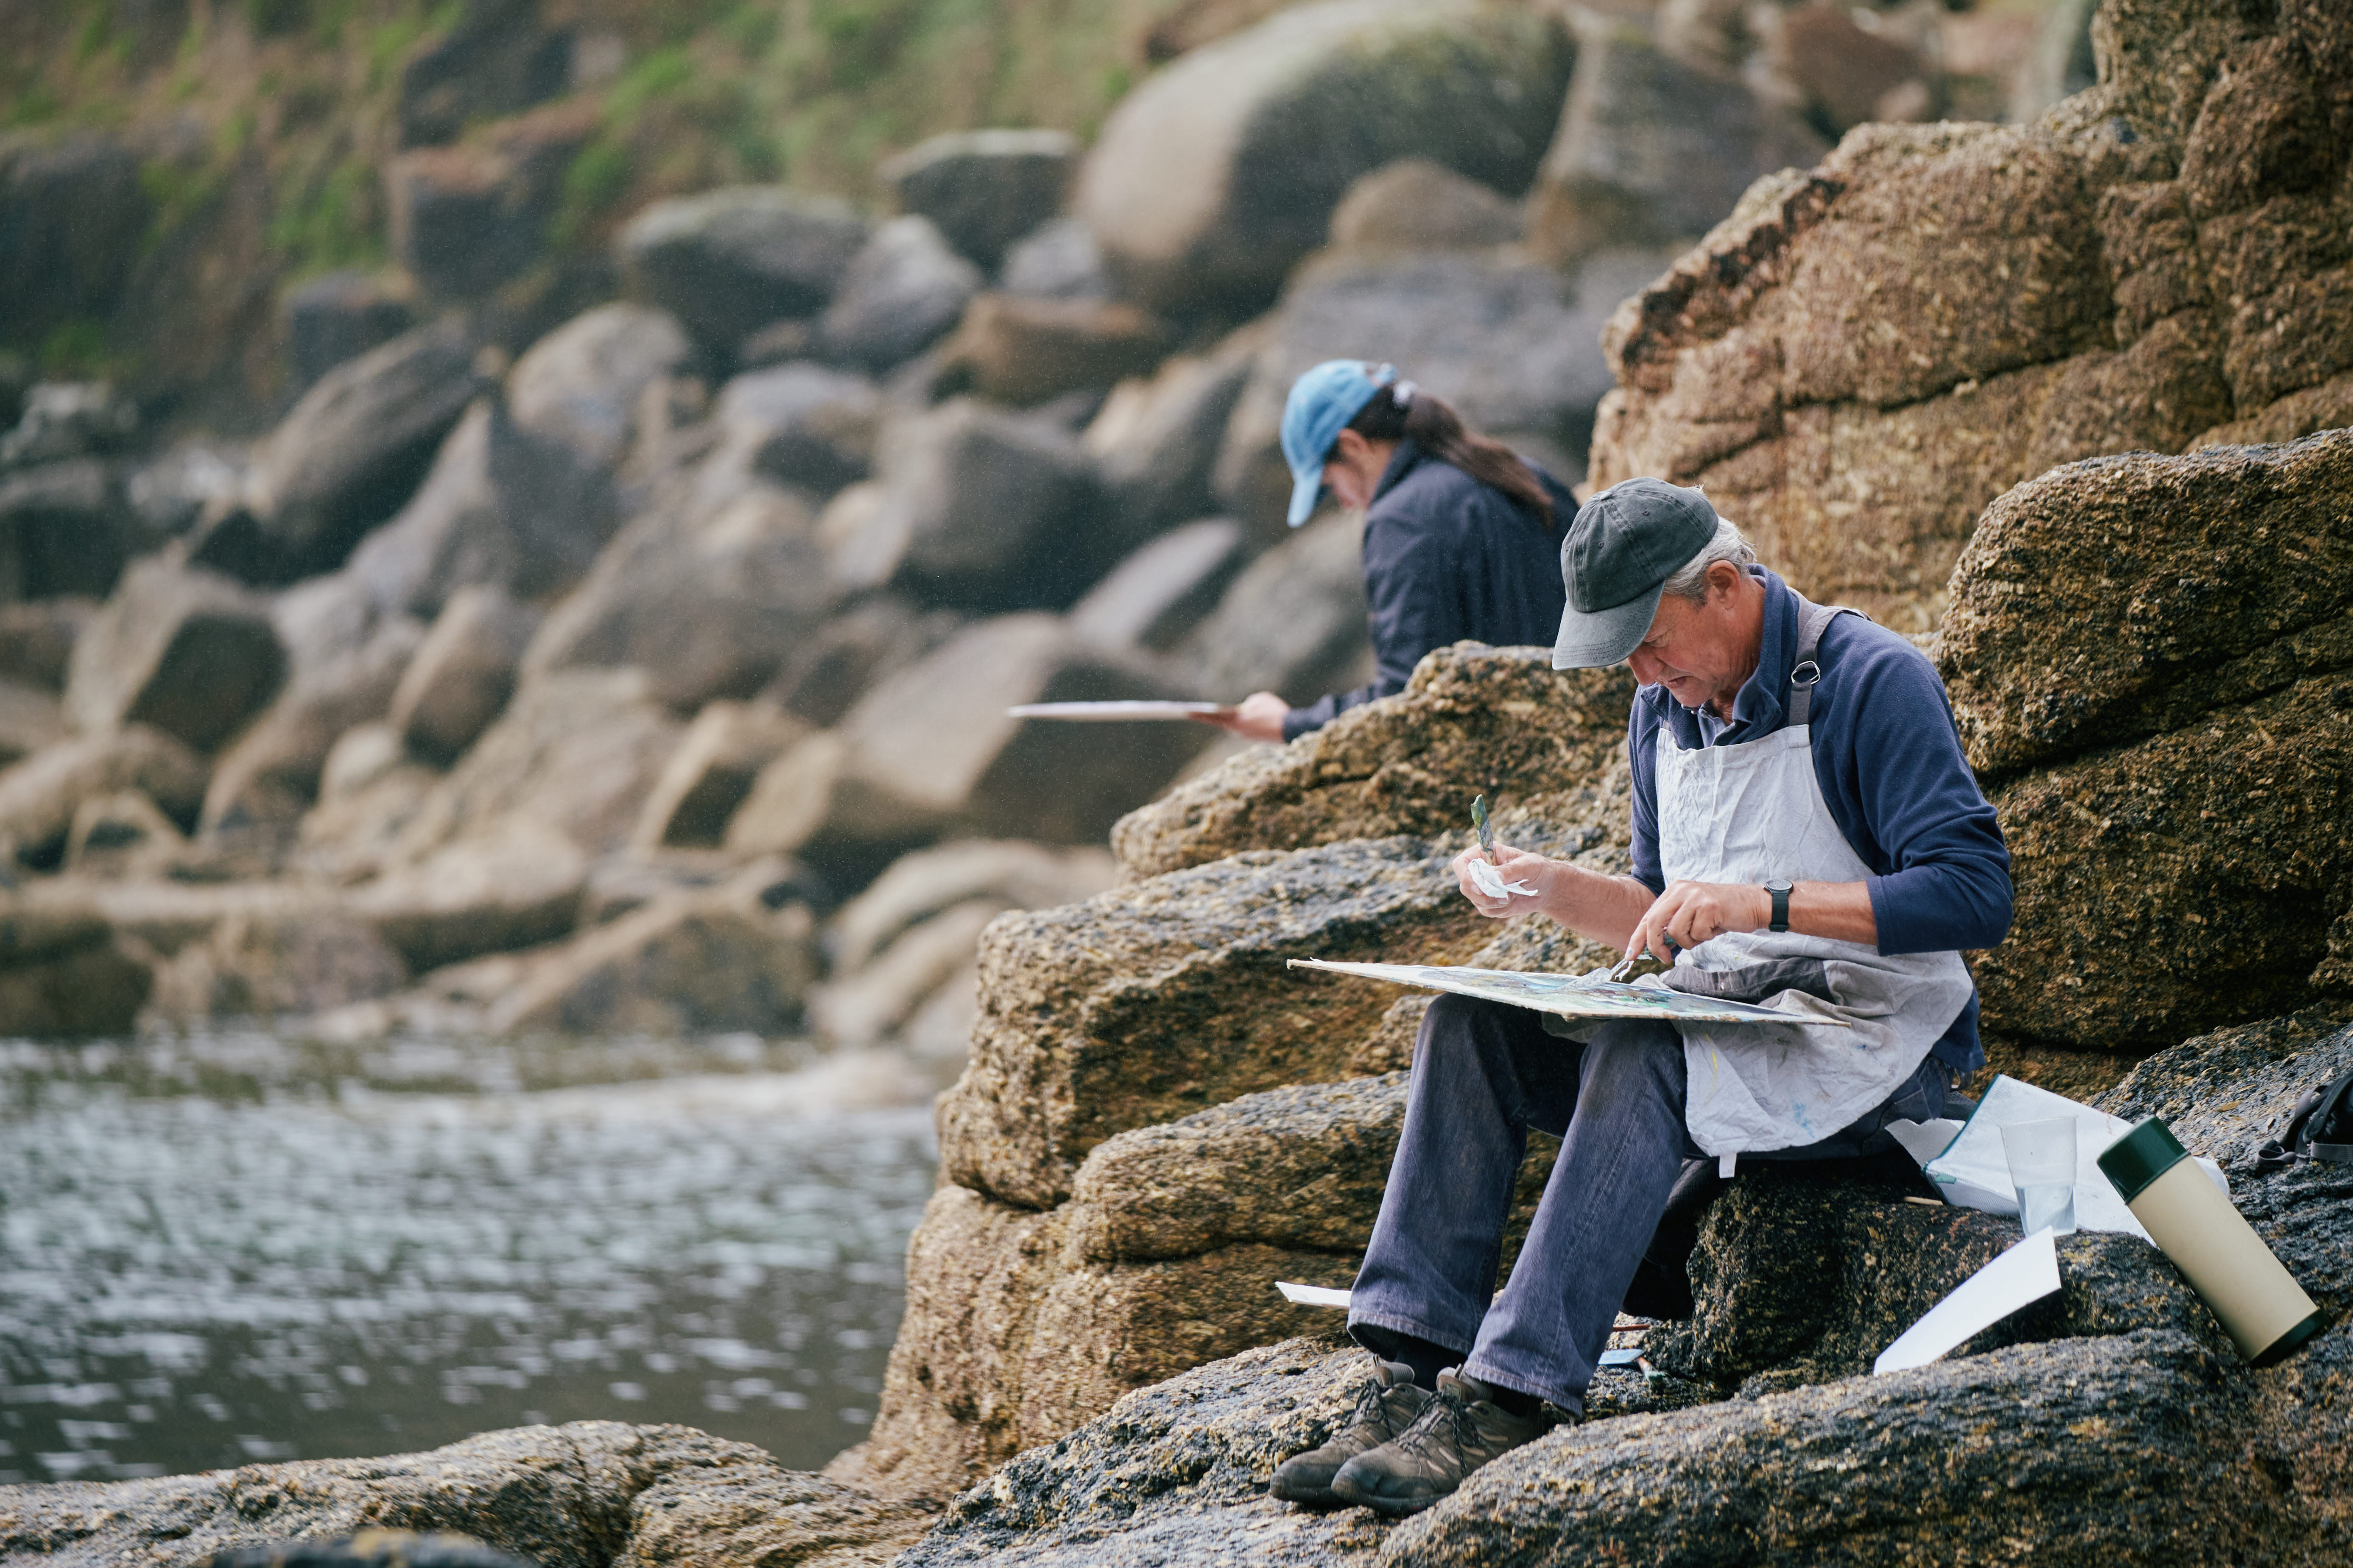 A weekend at the Newlyn School of Art: 'You'll find yourself studying breaking waves, changing colours and shifting light in a whole new way' - Country Life